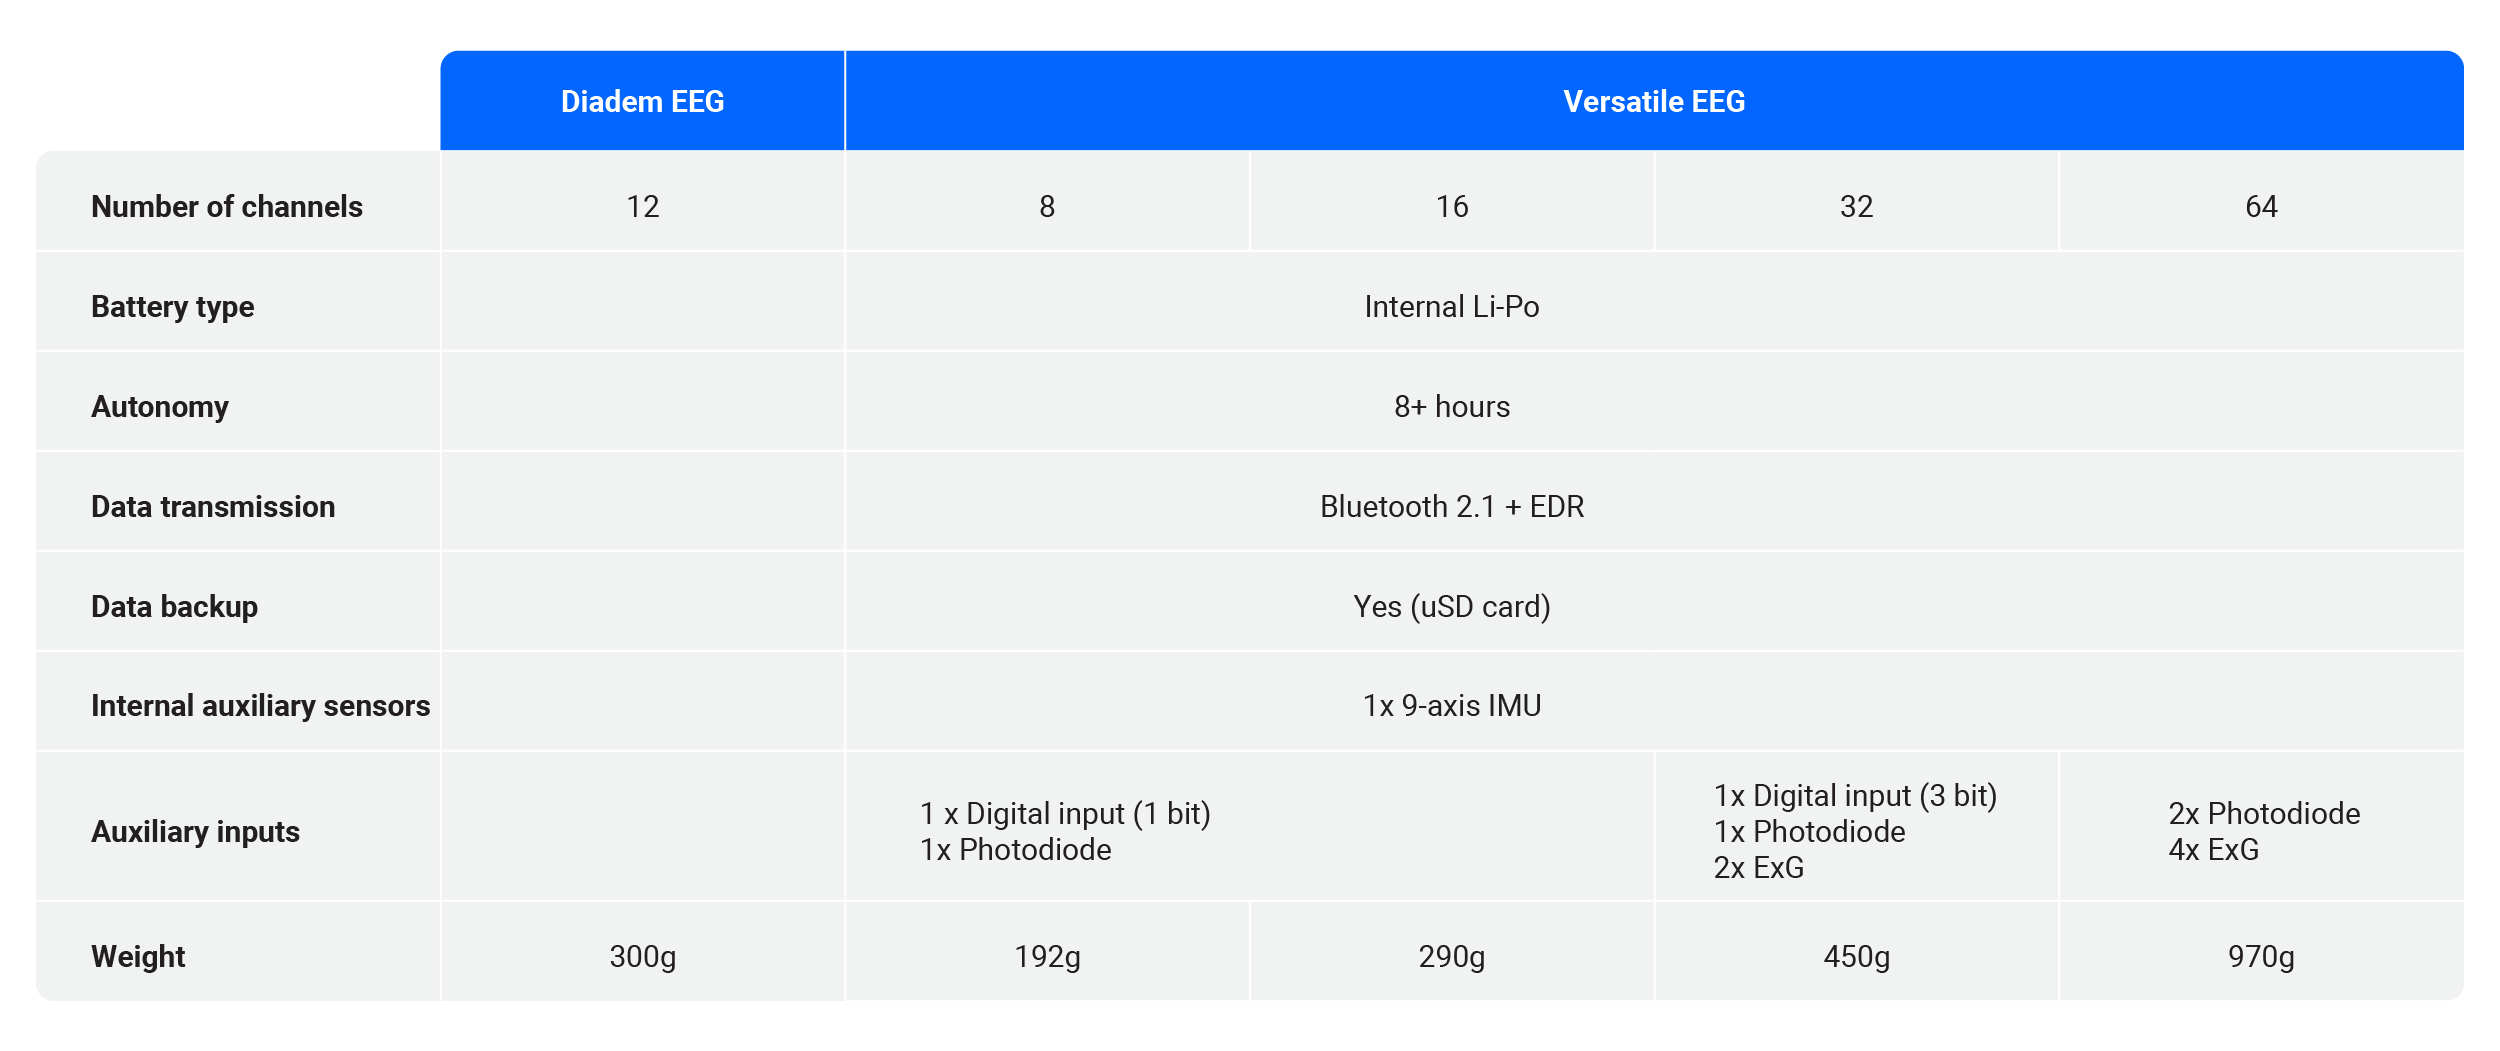 comparision table of the eeg headset technical features